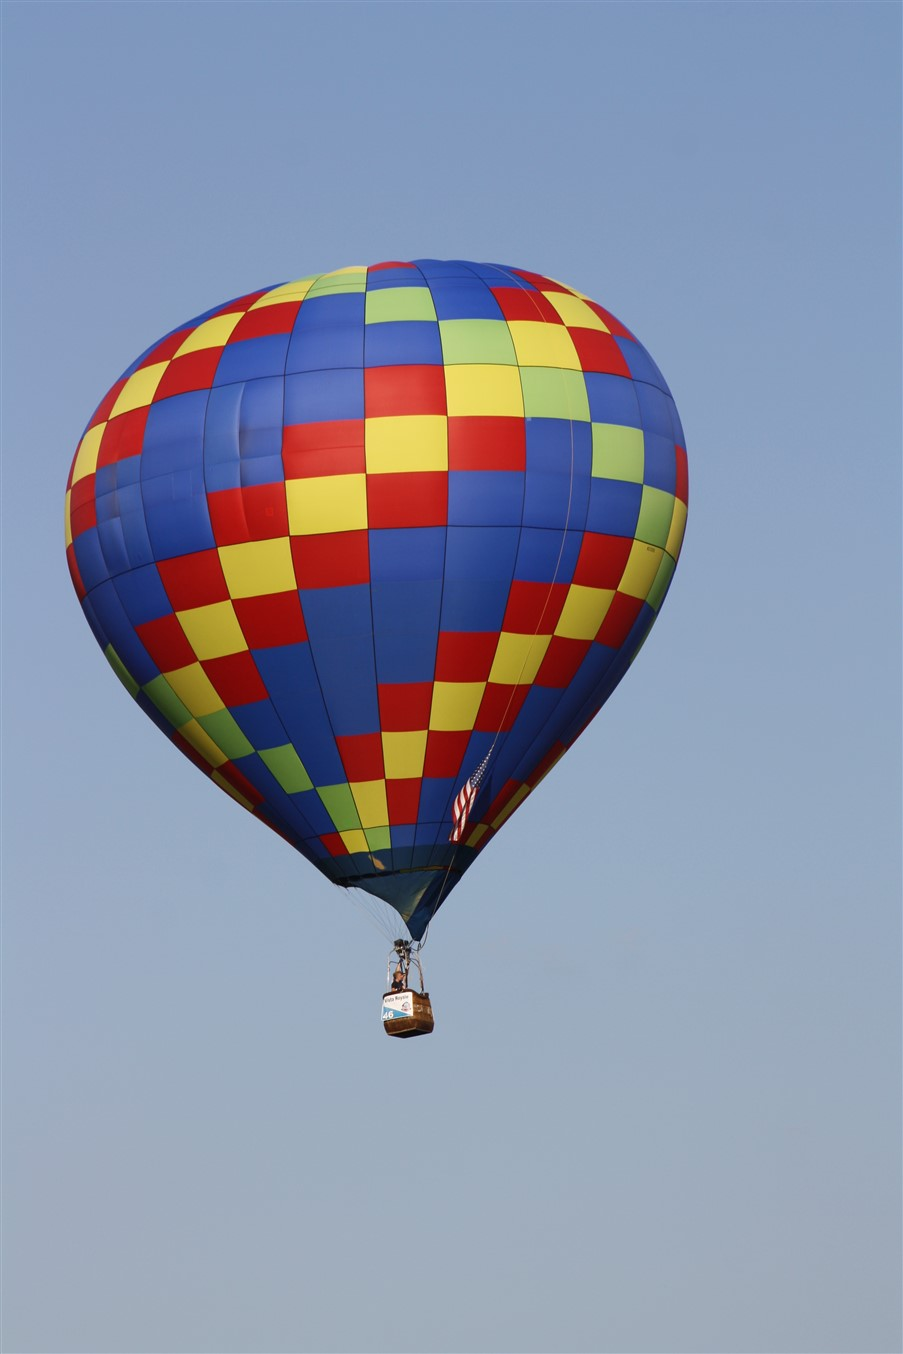 2011 07 30 Canton Hot Air Balloon Festival 7.jpg